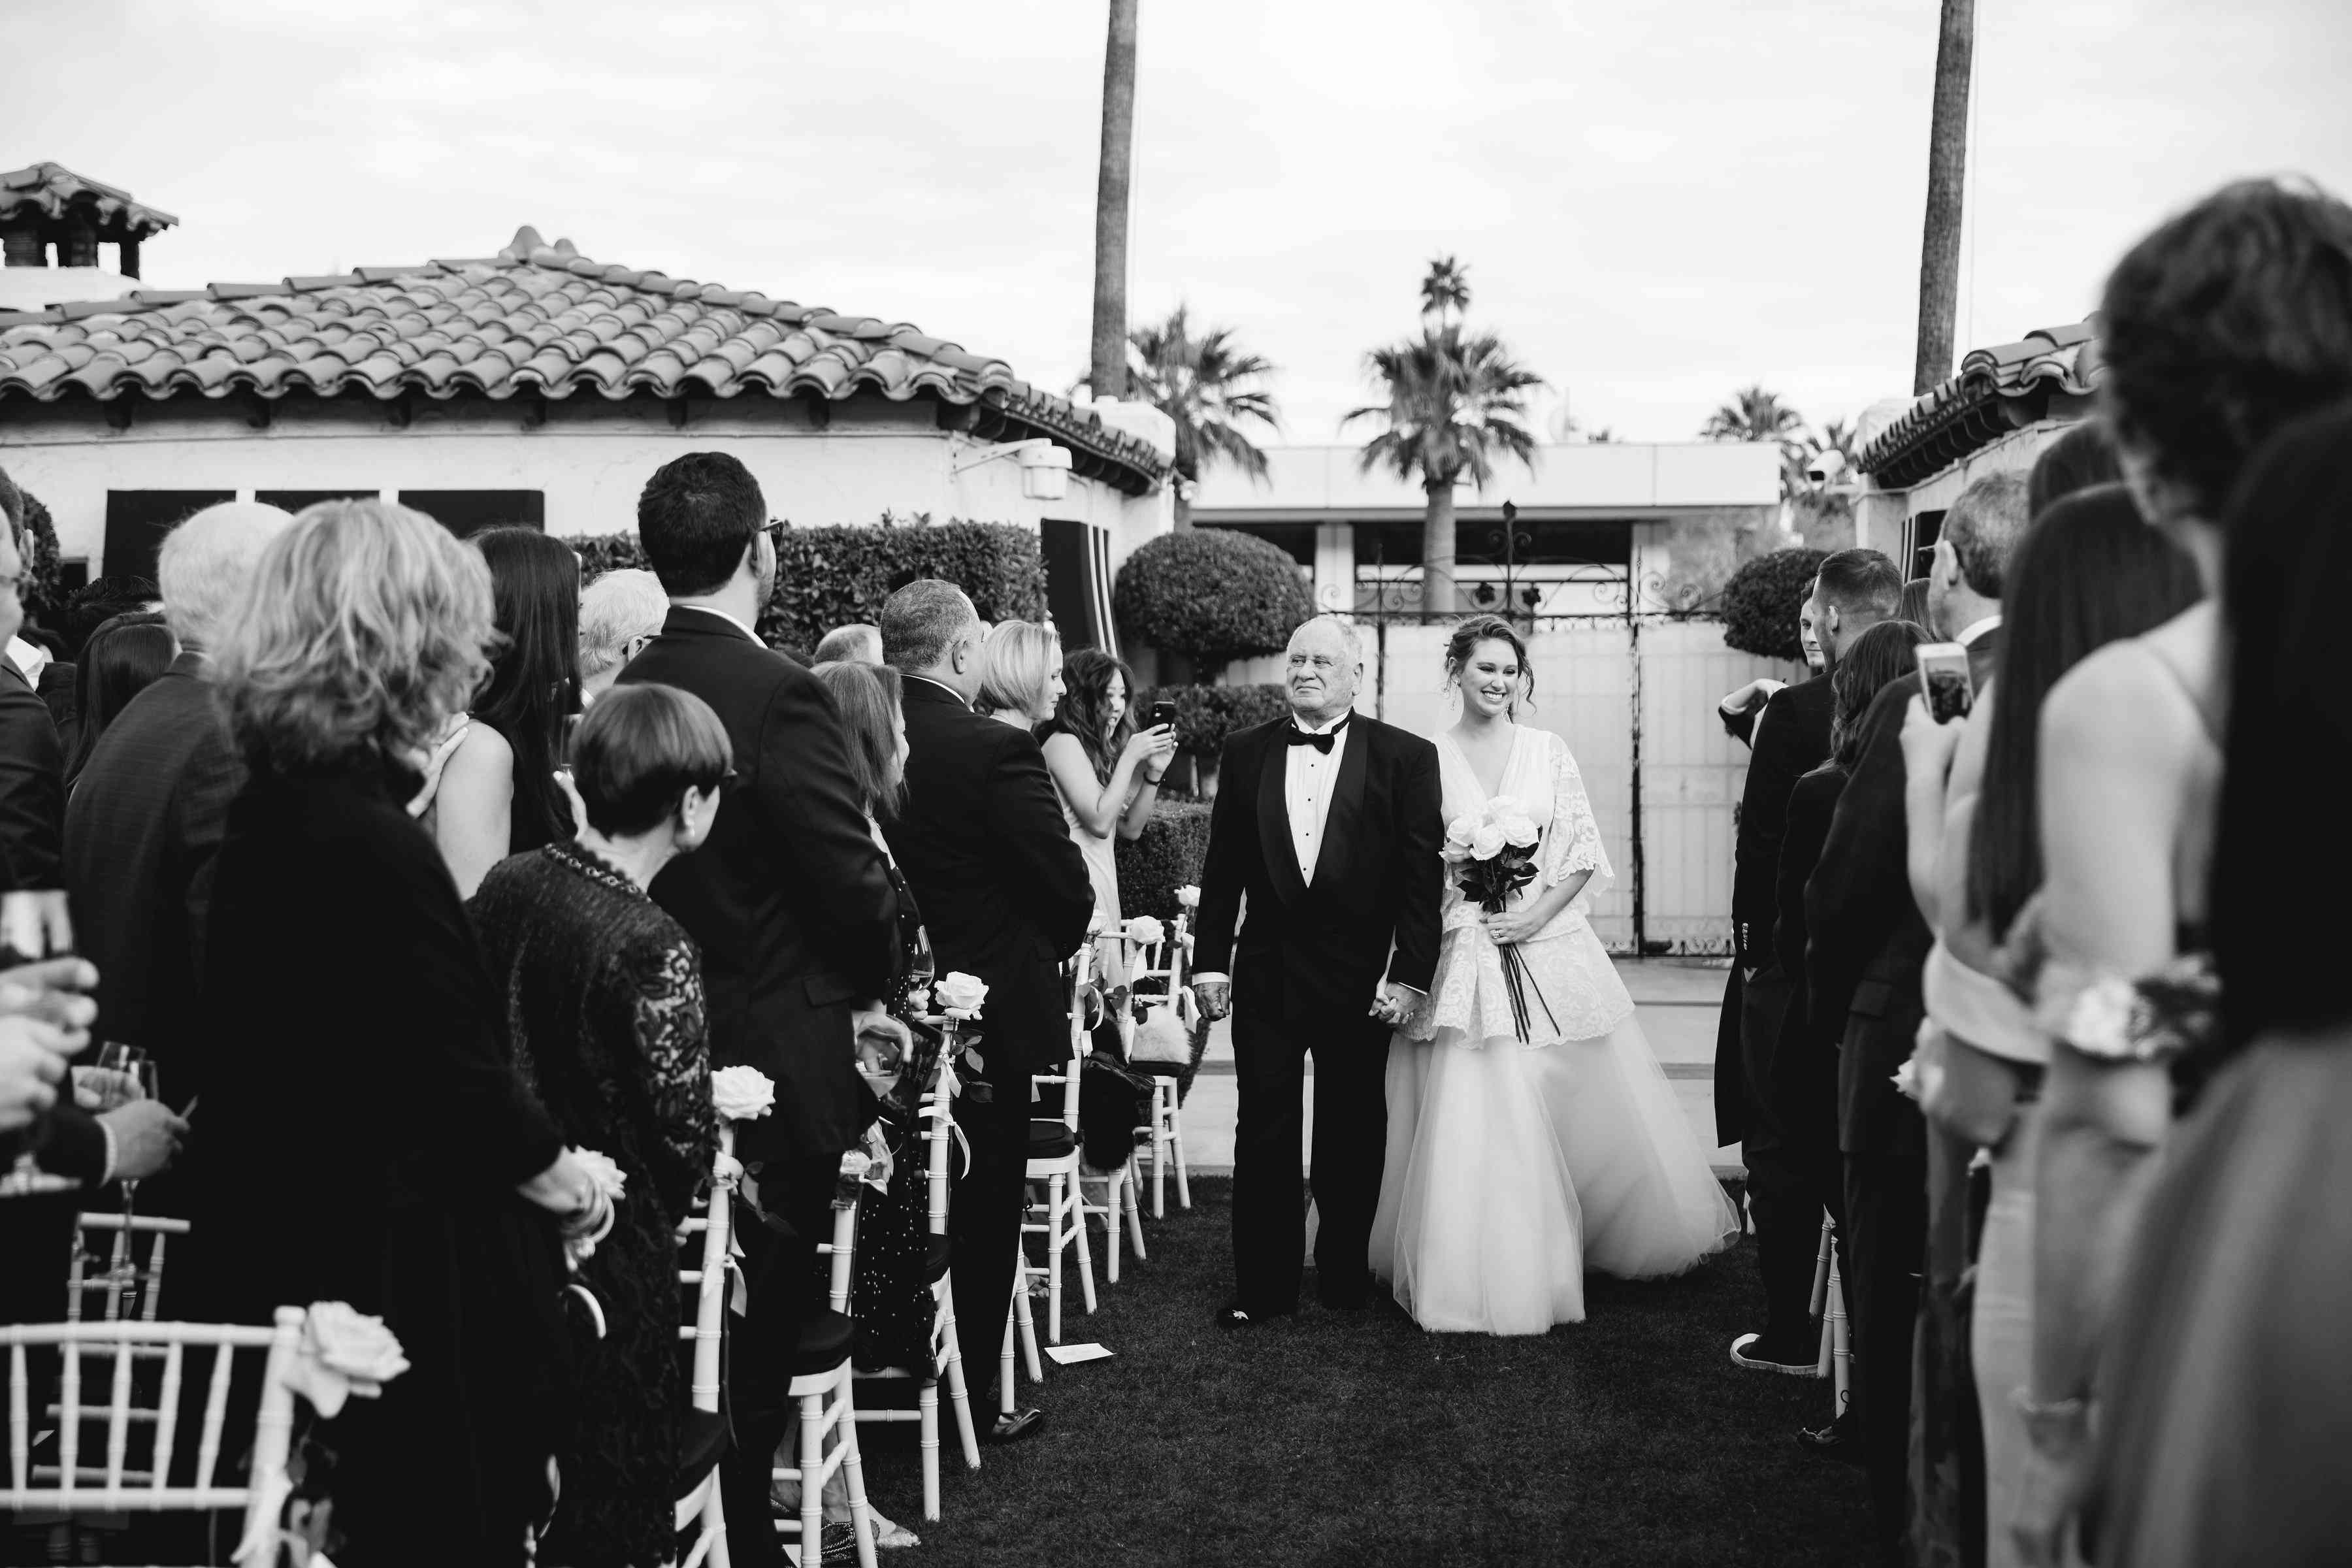 <p>father walking bride down the aisle</p><br><br>